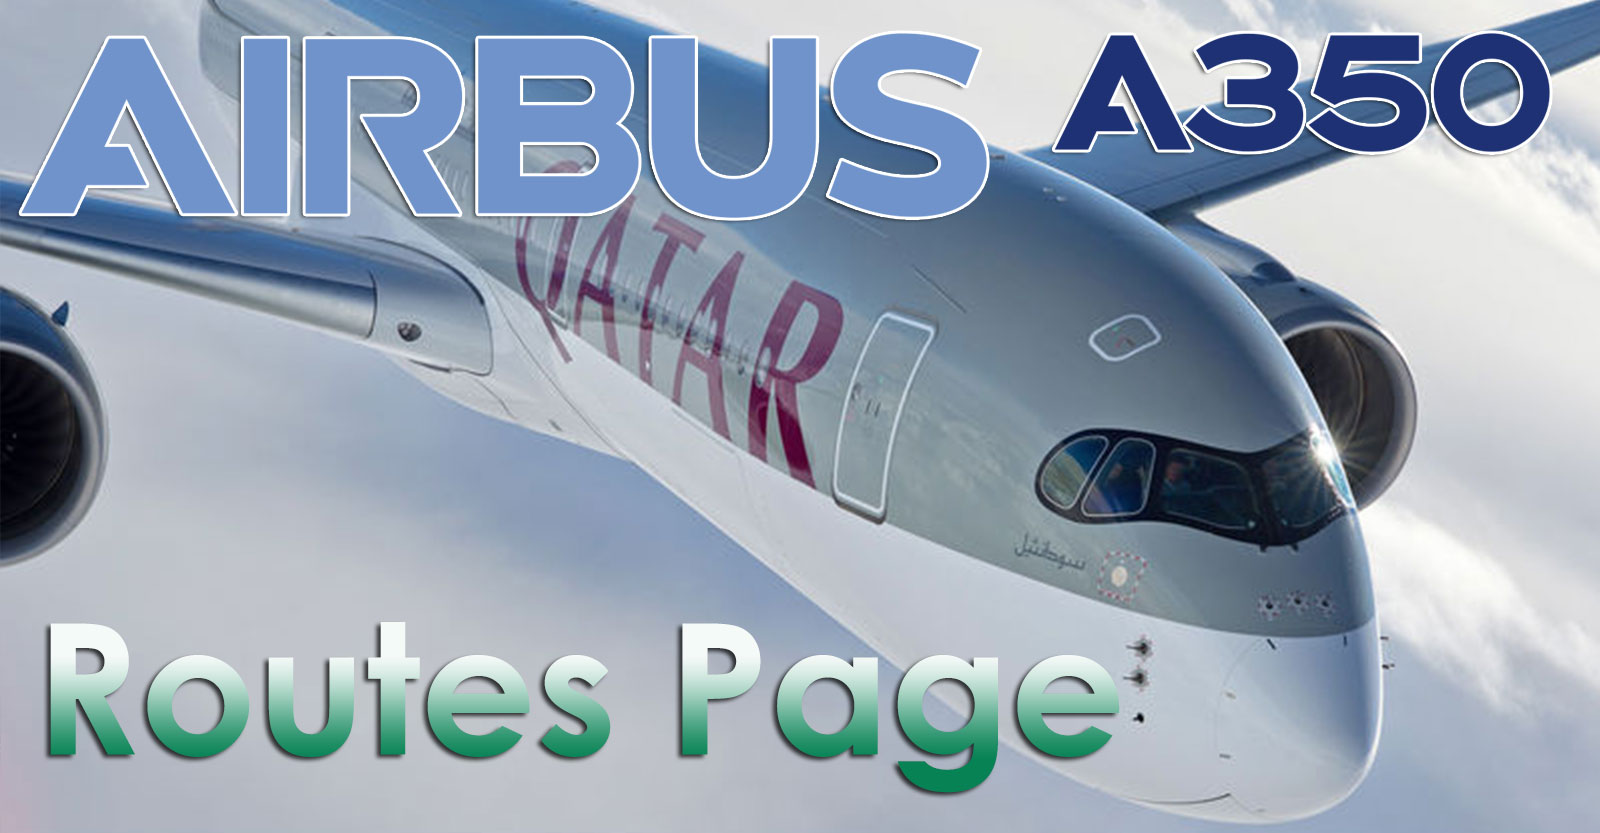 A350 Routes Page